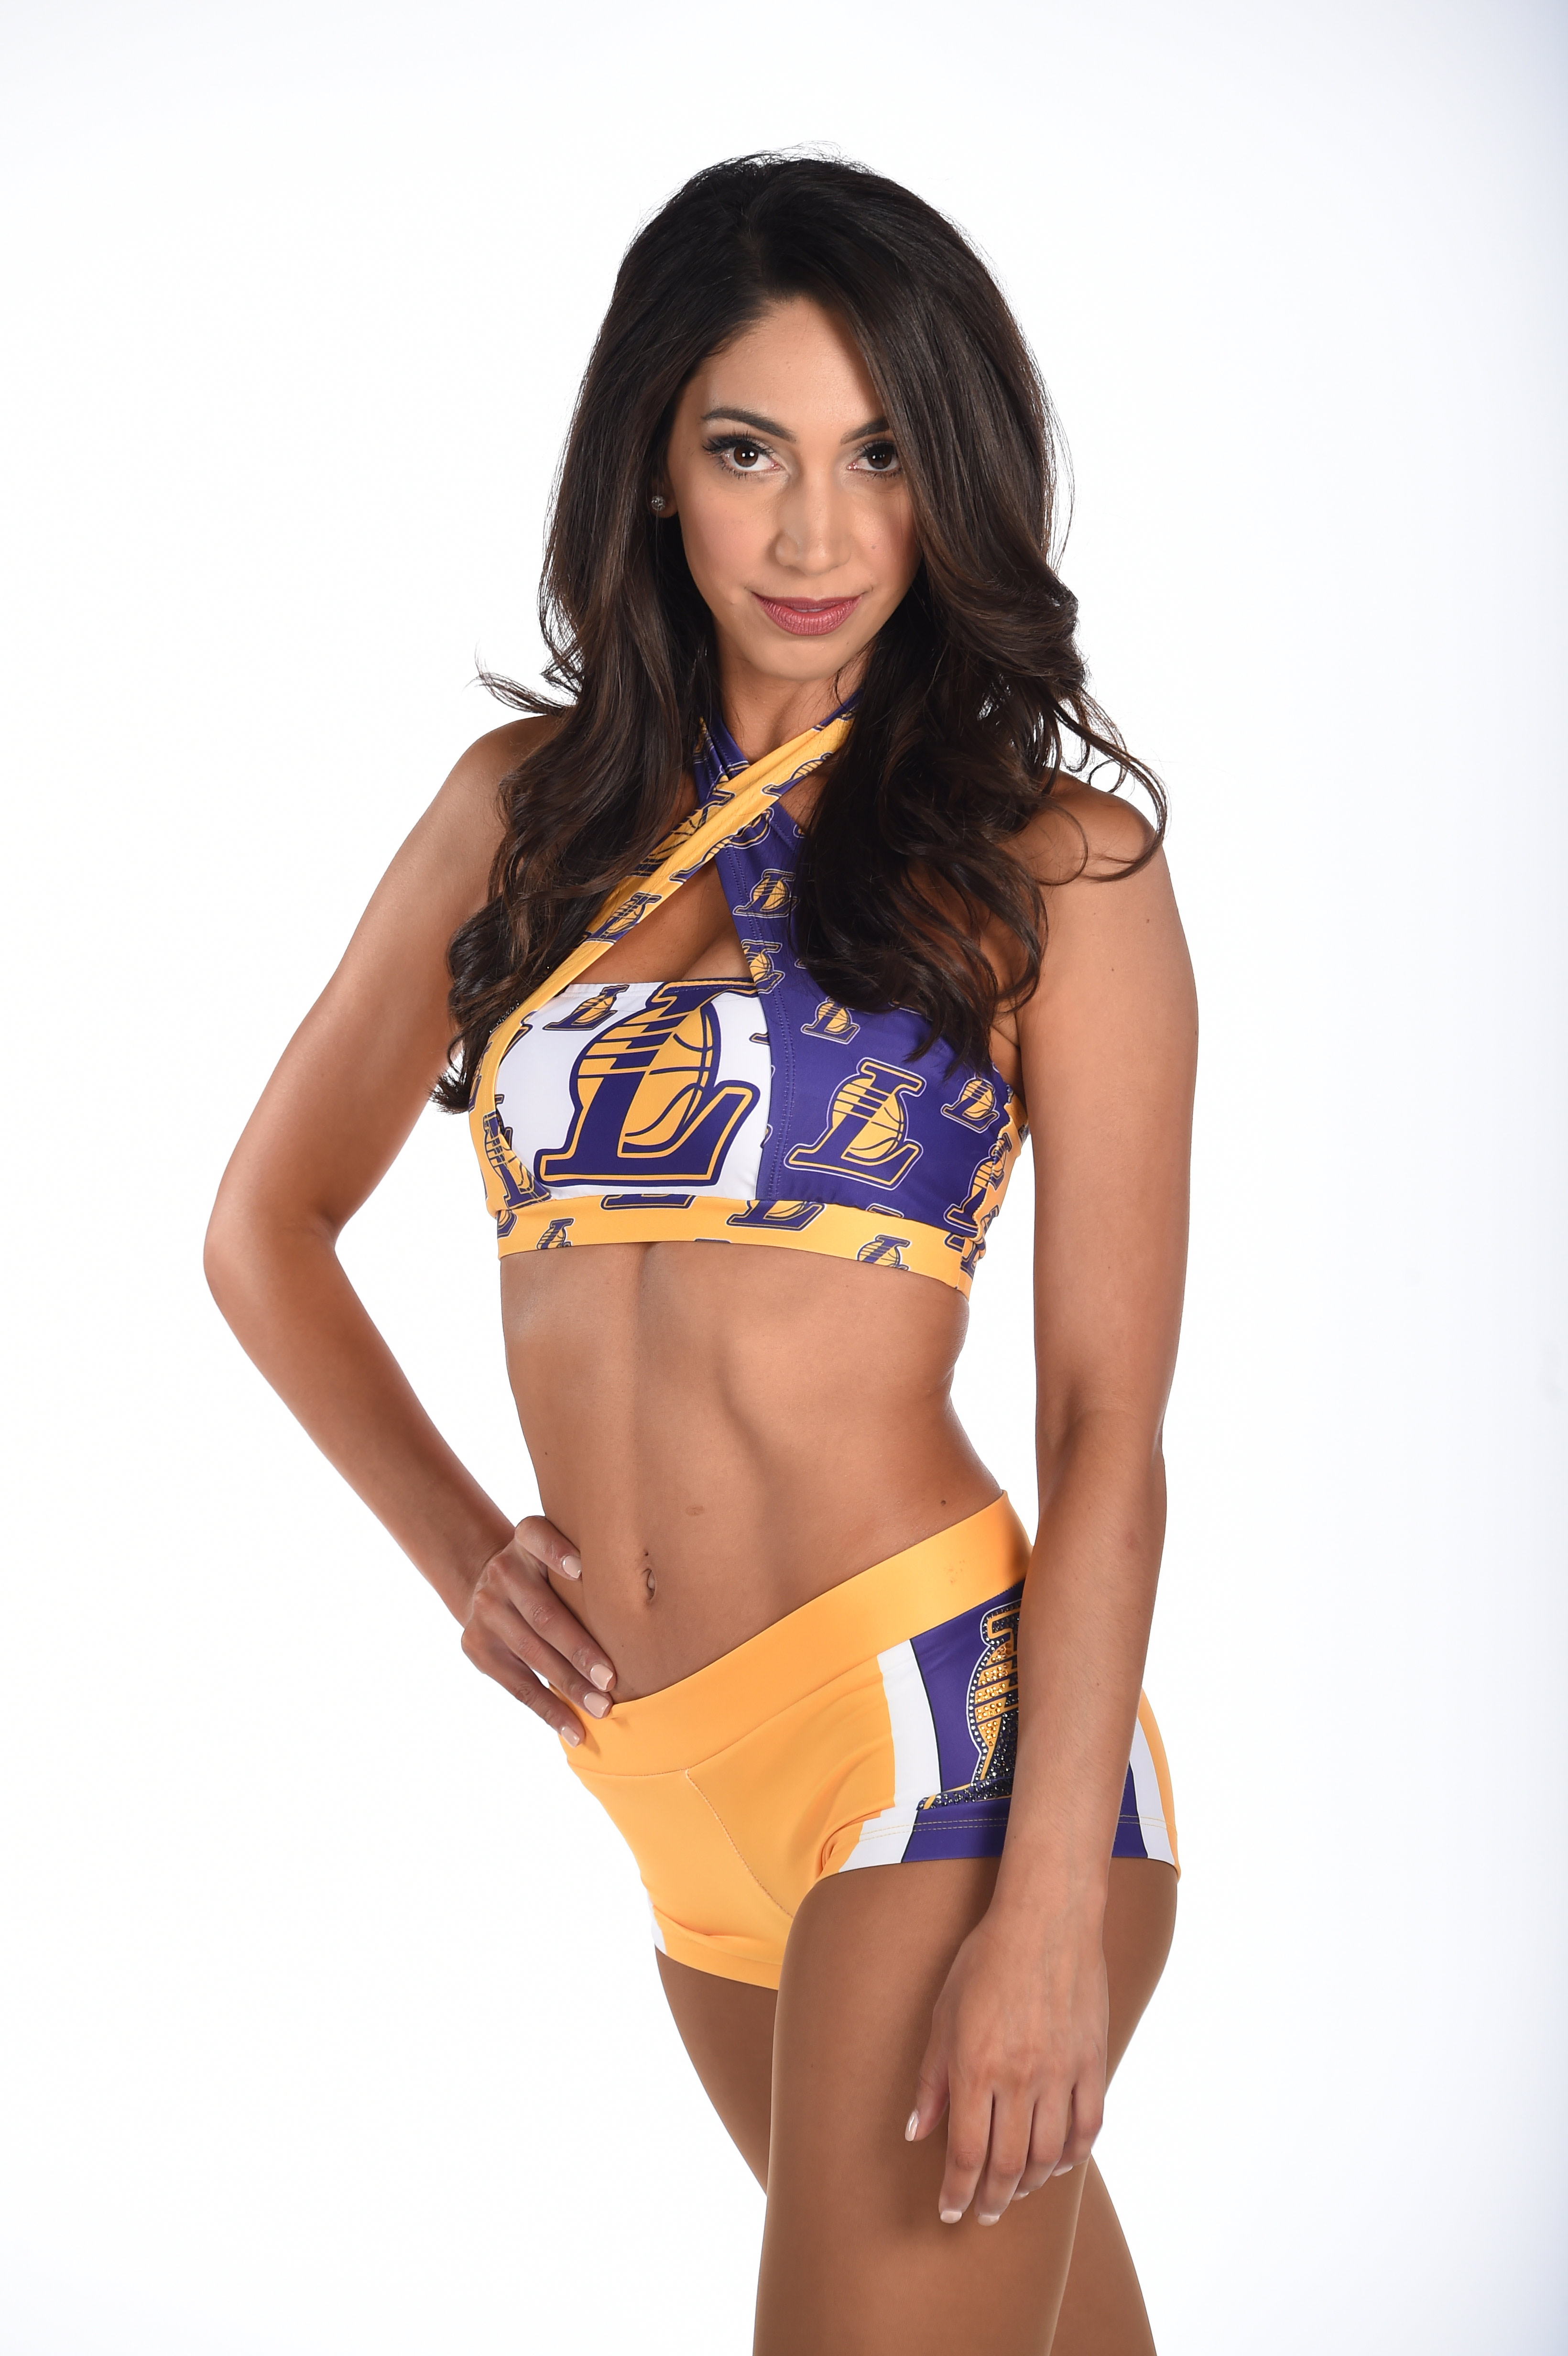 Laker Girls - Zandra